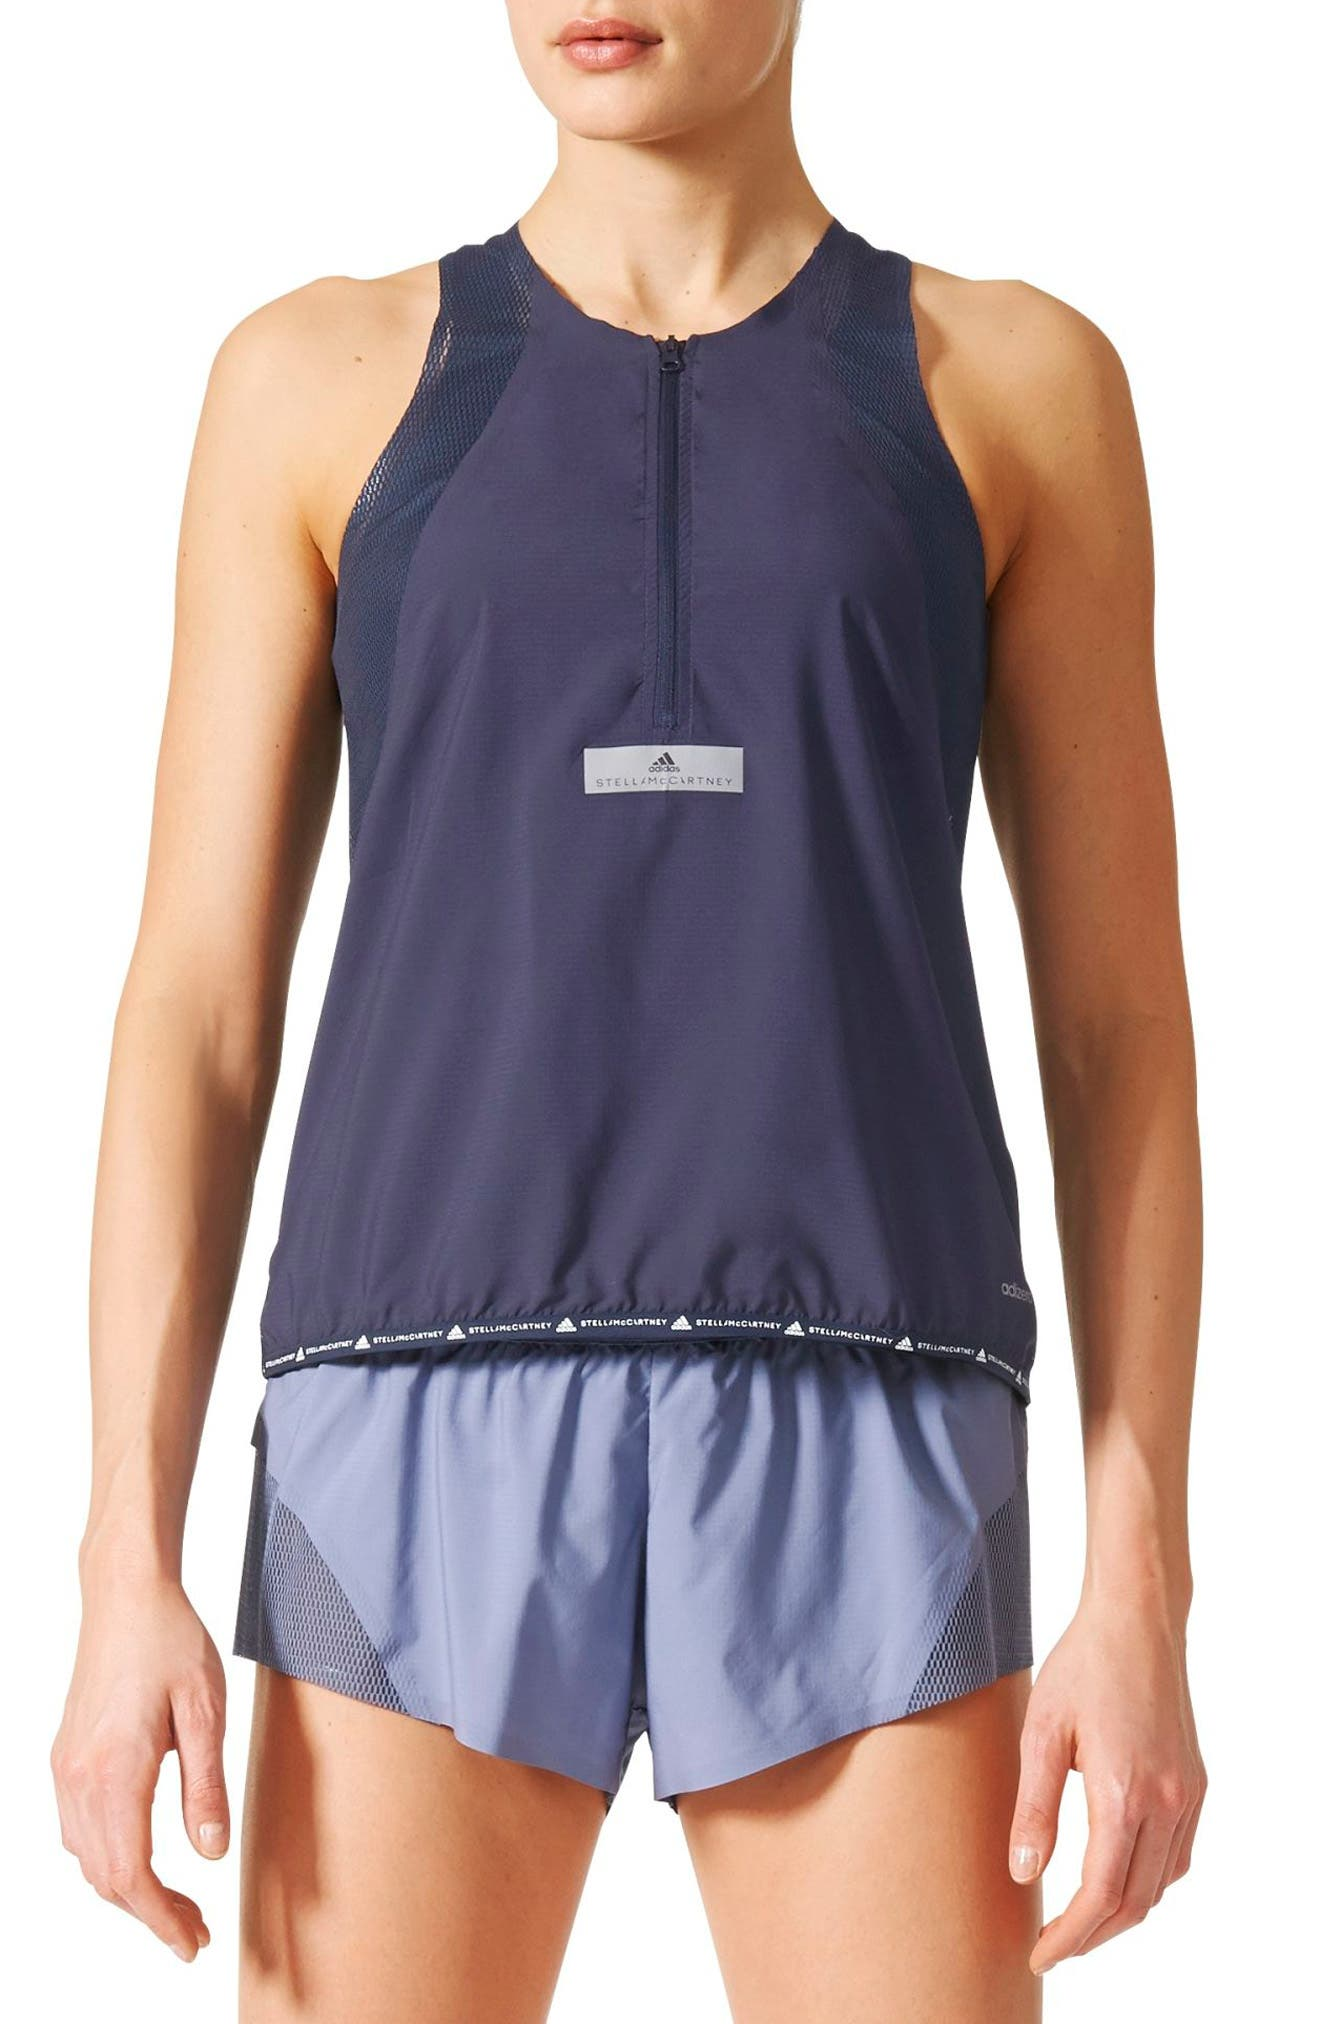 Adizero Running Tank,                             Main thumbnail 1, color,                             400